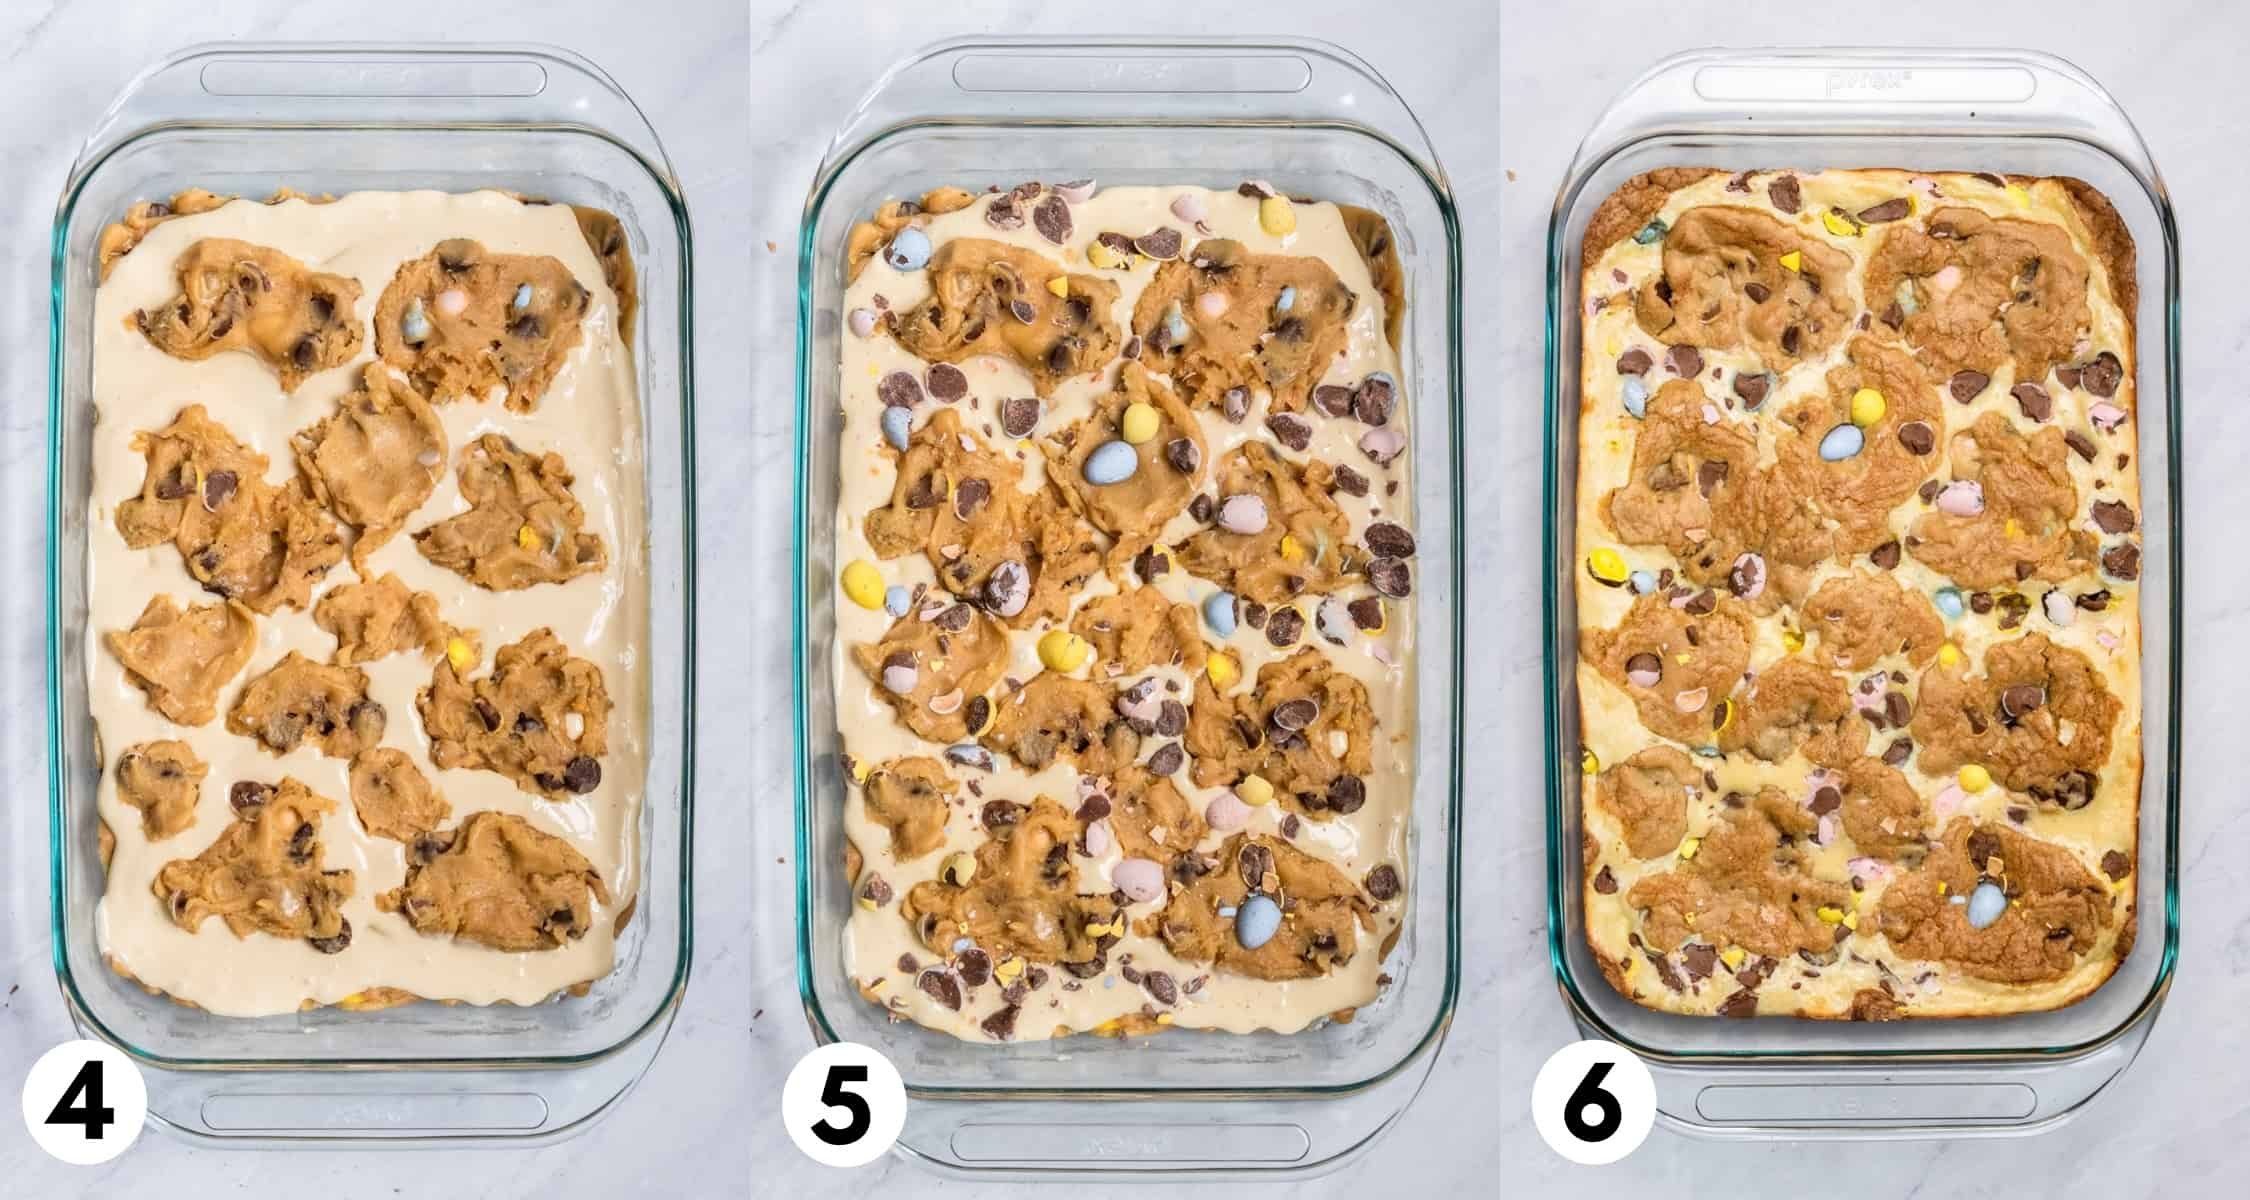 Cookie dough layer on top of cheesecake layer in baking pan and then fully baked.